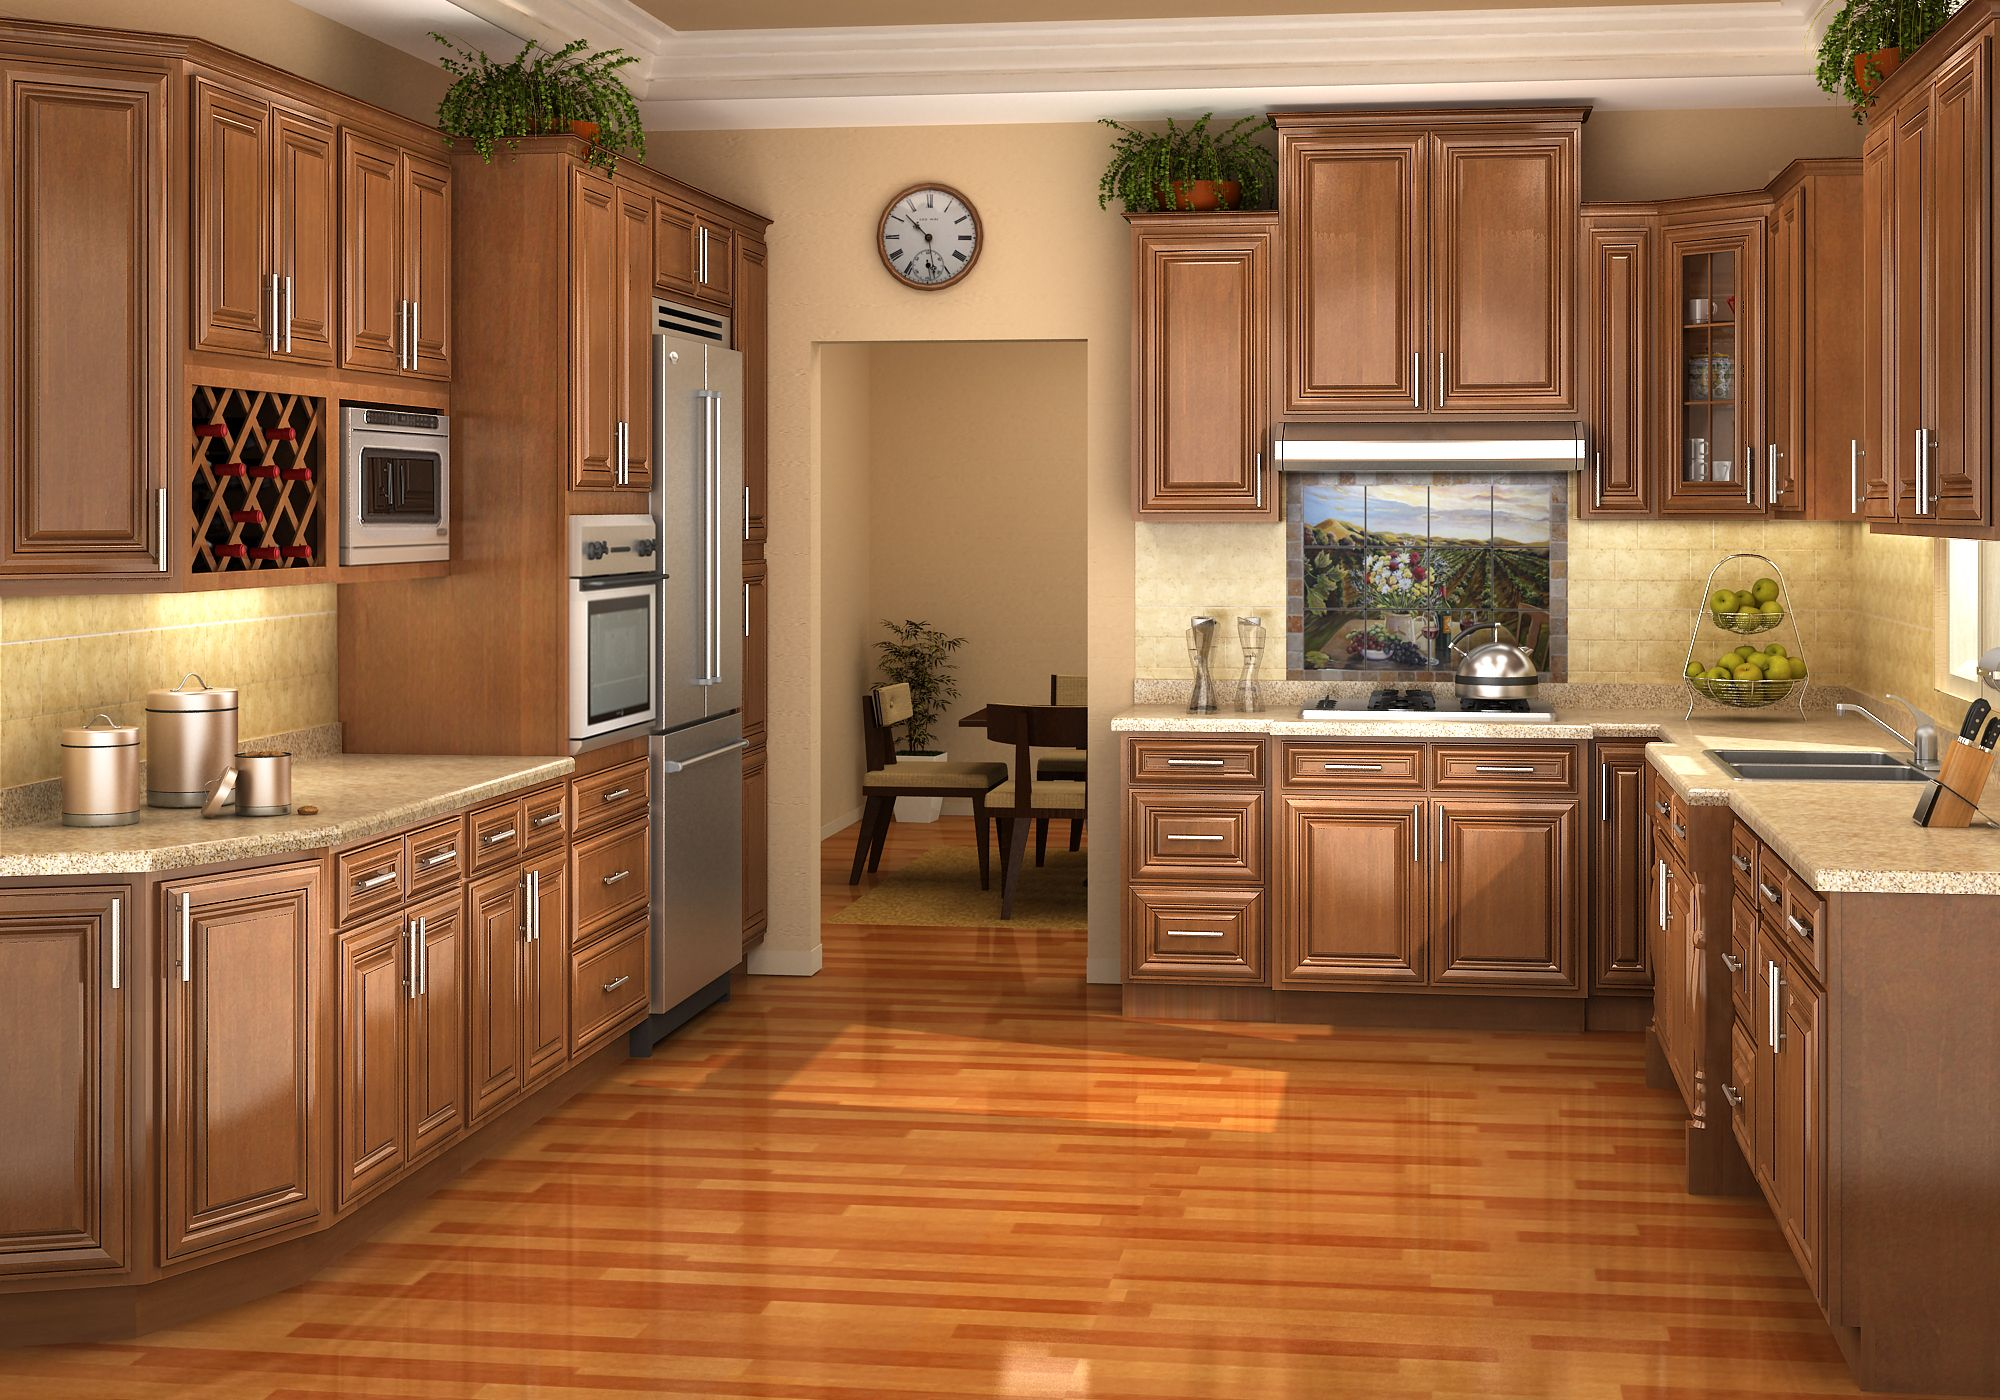 Chestnut Pillow Cabinet Finish Assembled Kitchen Cabinets Kitchen Cabinet Kings Glazed Kitchen Cabinets